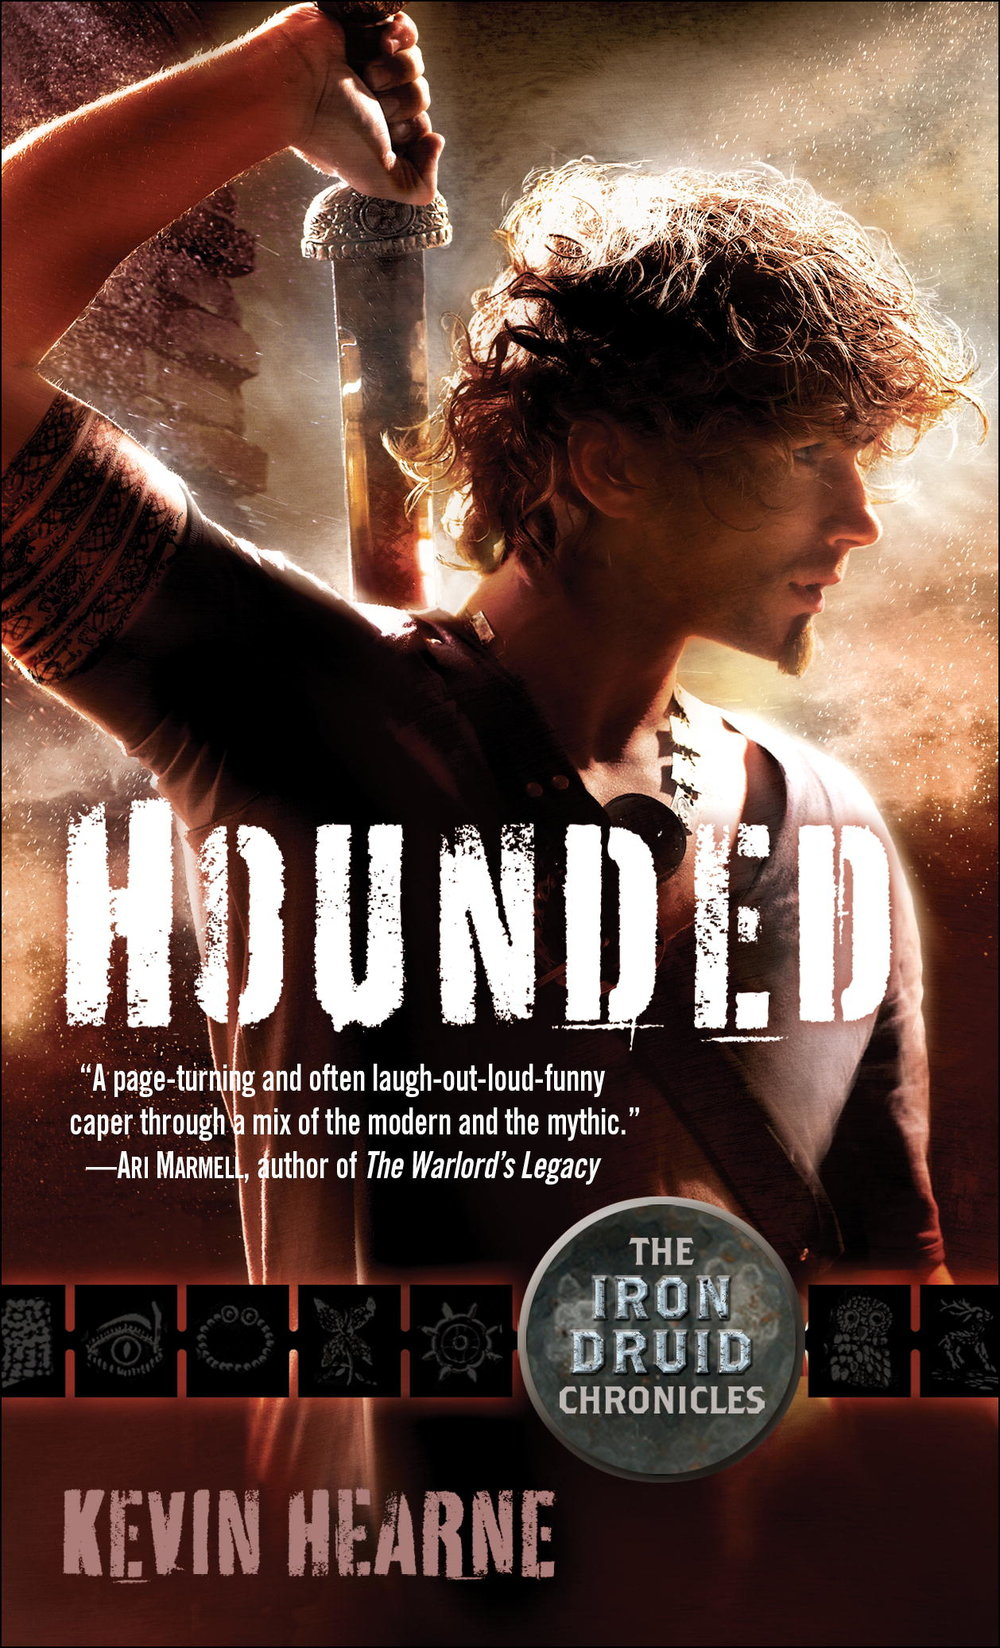 If you've ever wondered how to write a page turner, read  Hounded  by Kevin Hearne. Using a narrator with an outstanding sense of humor, strategic chapter breaks, and a unique cast, this debut novel is a page turner worthy of a close read.  For a free chart comparing the different points of view, go to  https://www.ignitedinkwriting.com/point-of-view-chart